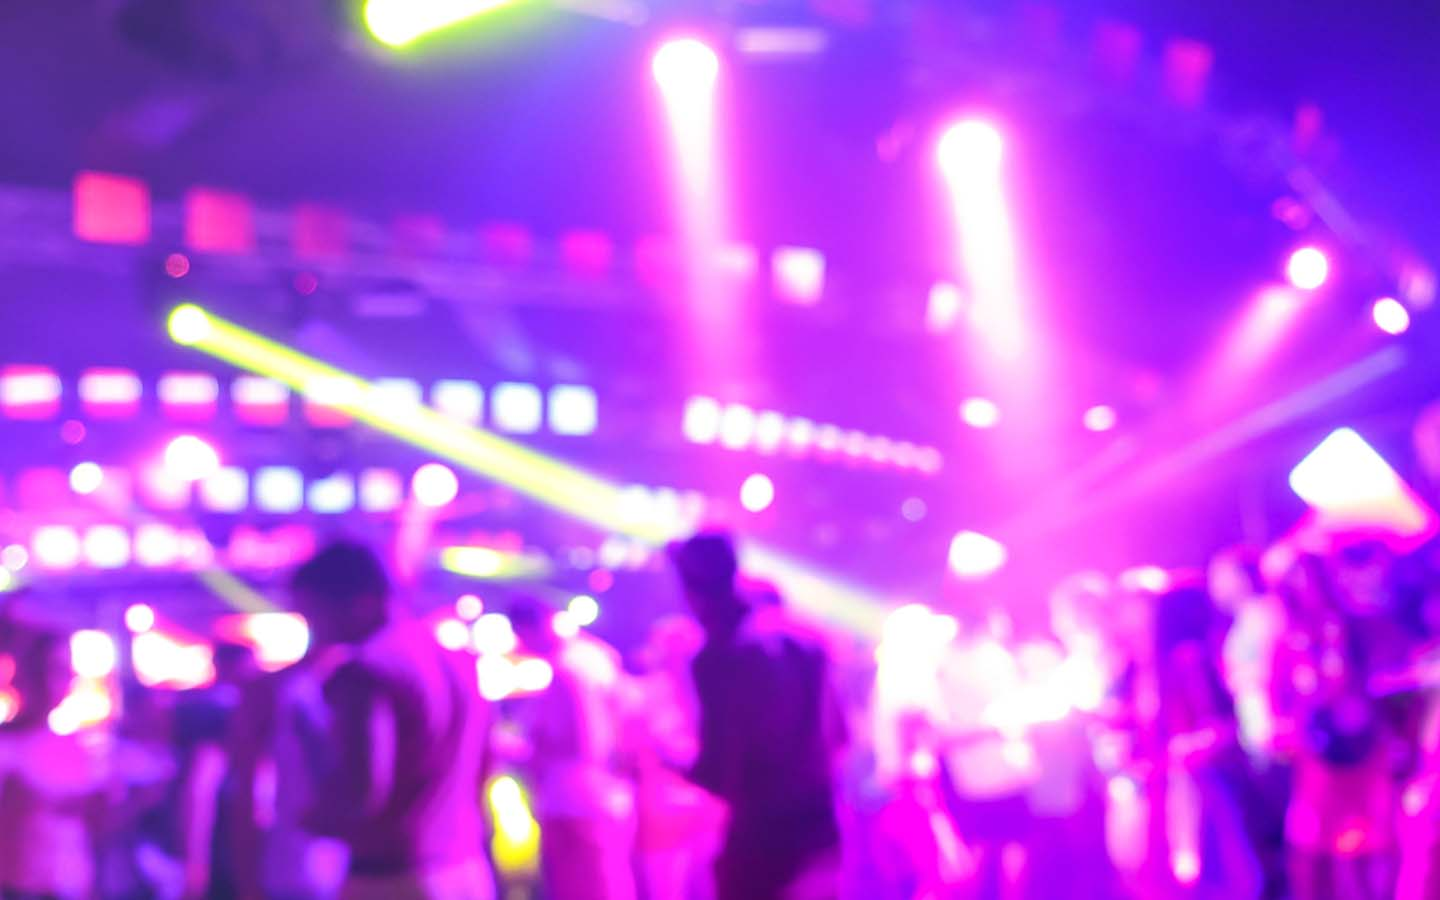 Inside view of a club